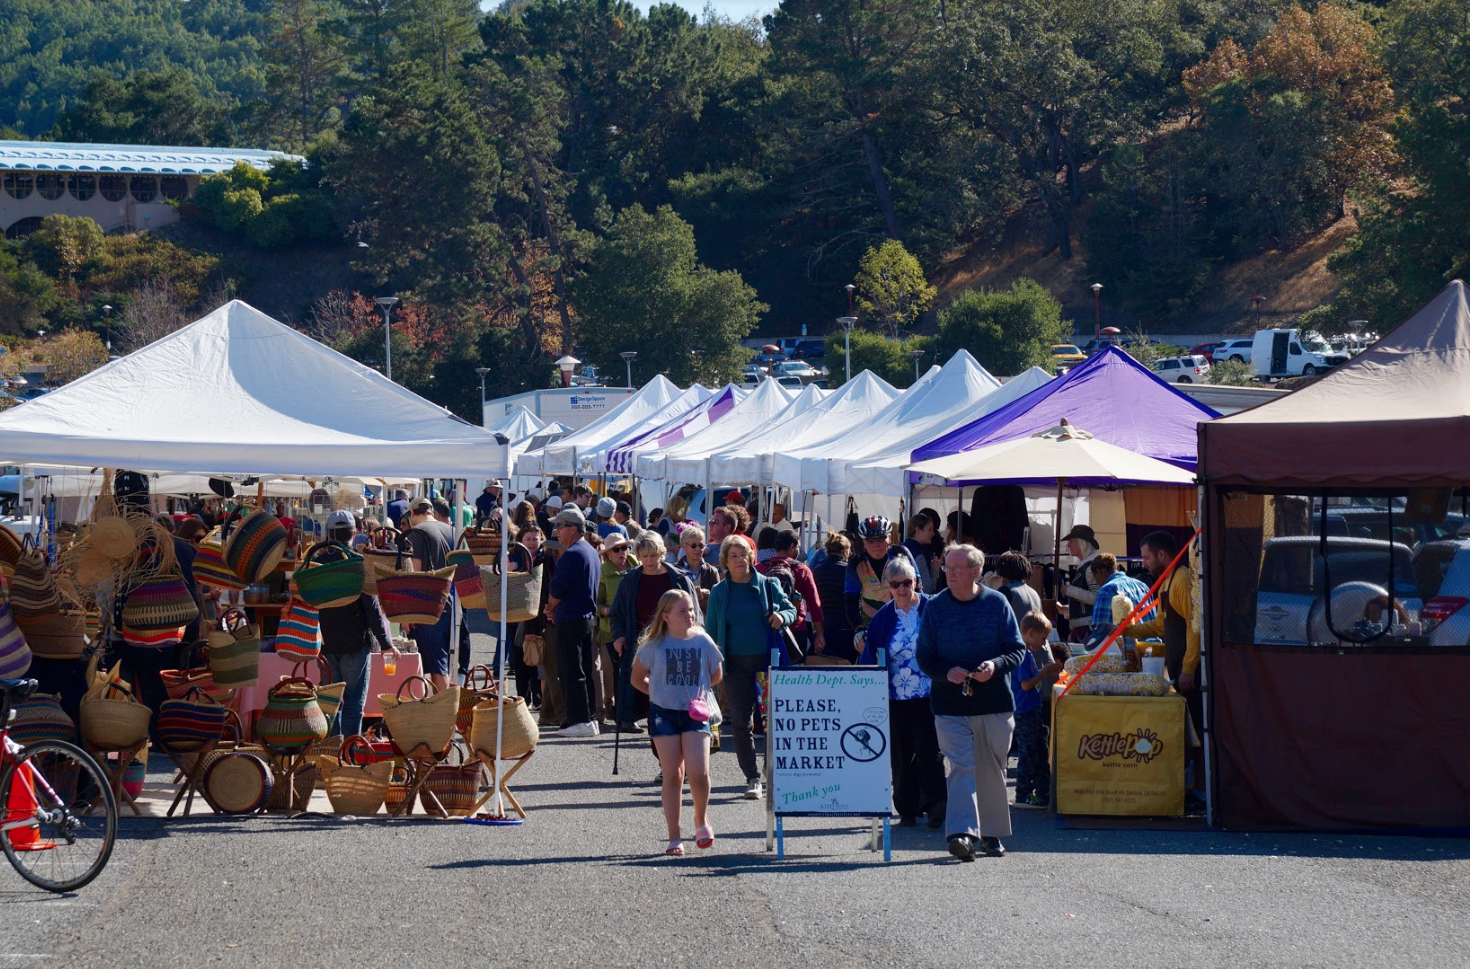 Finding fresh: an insight to farmers' markets in Marin